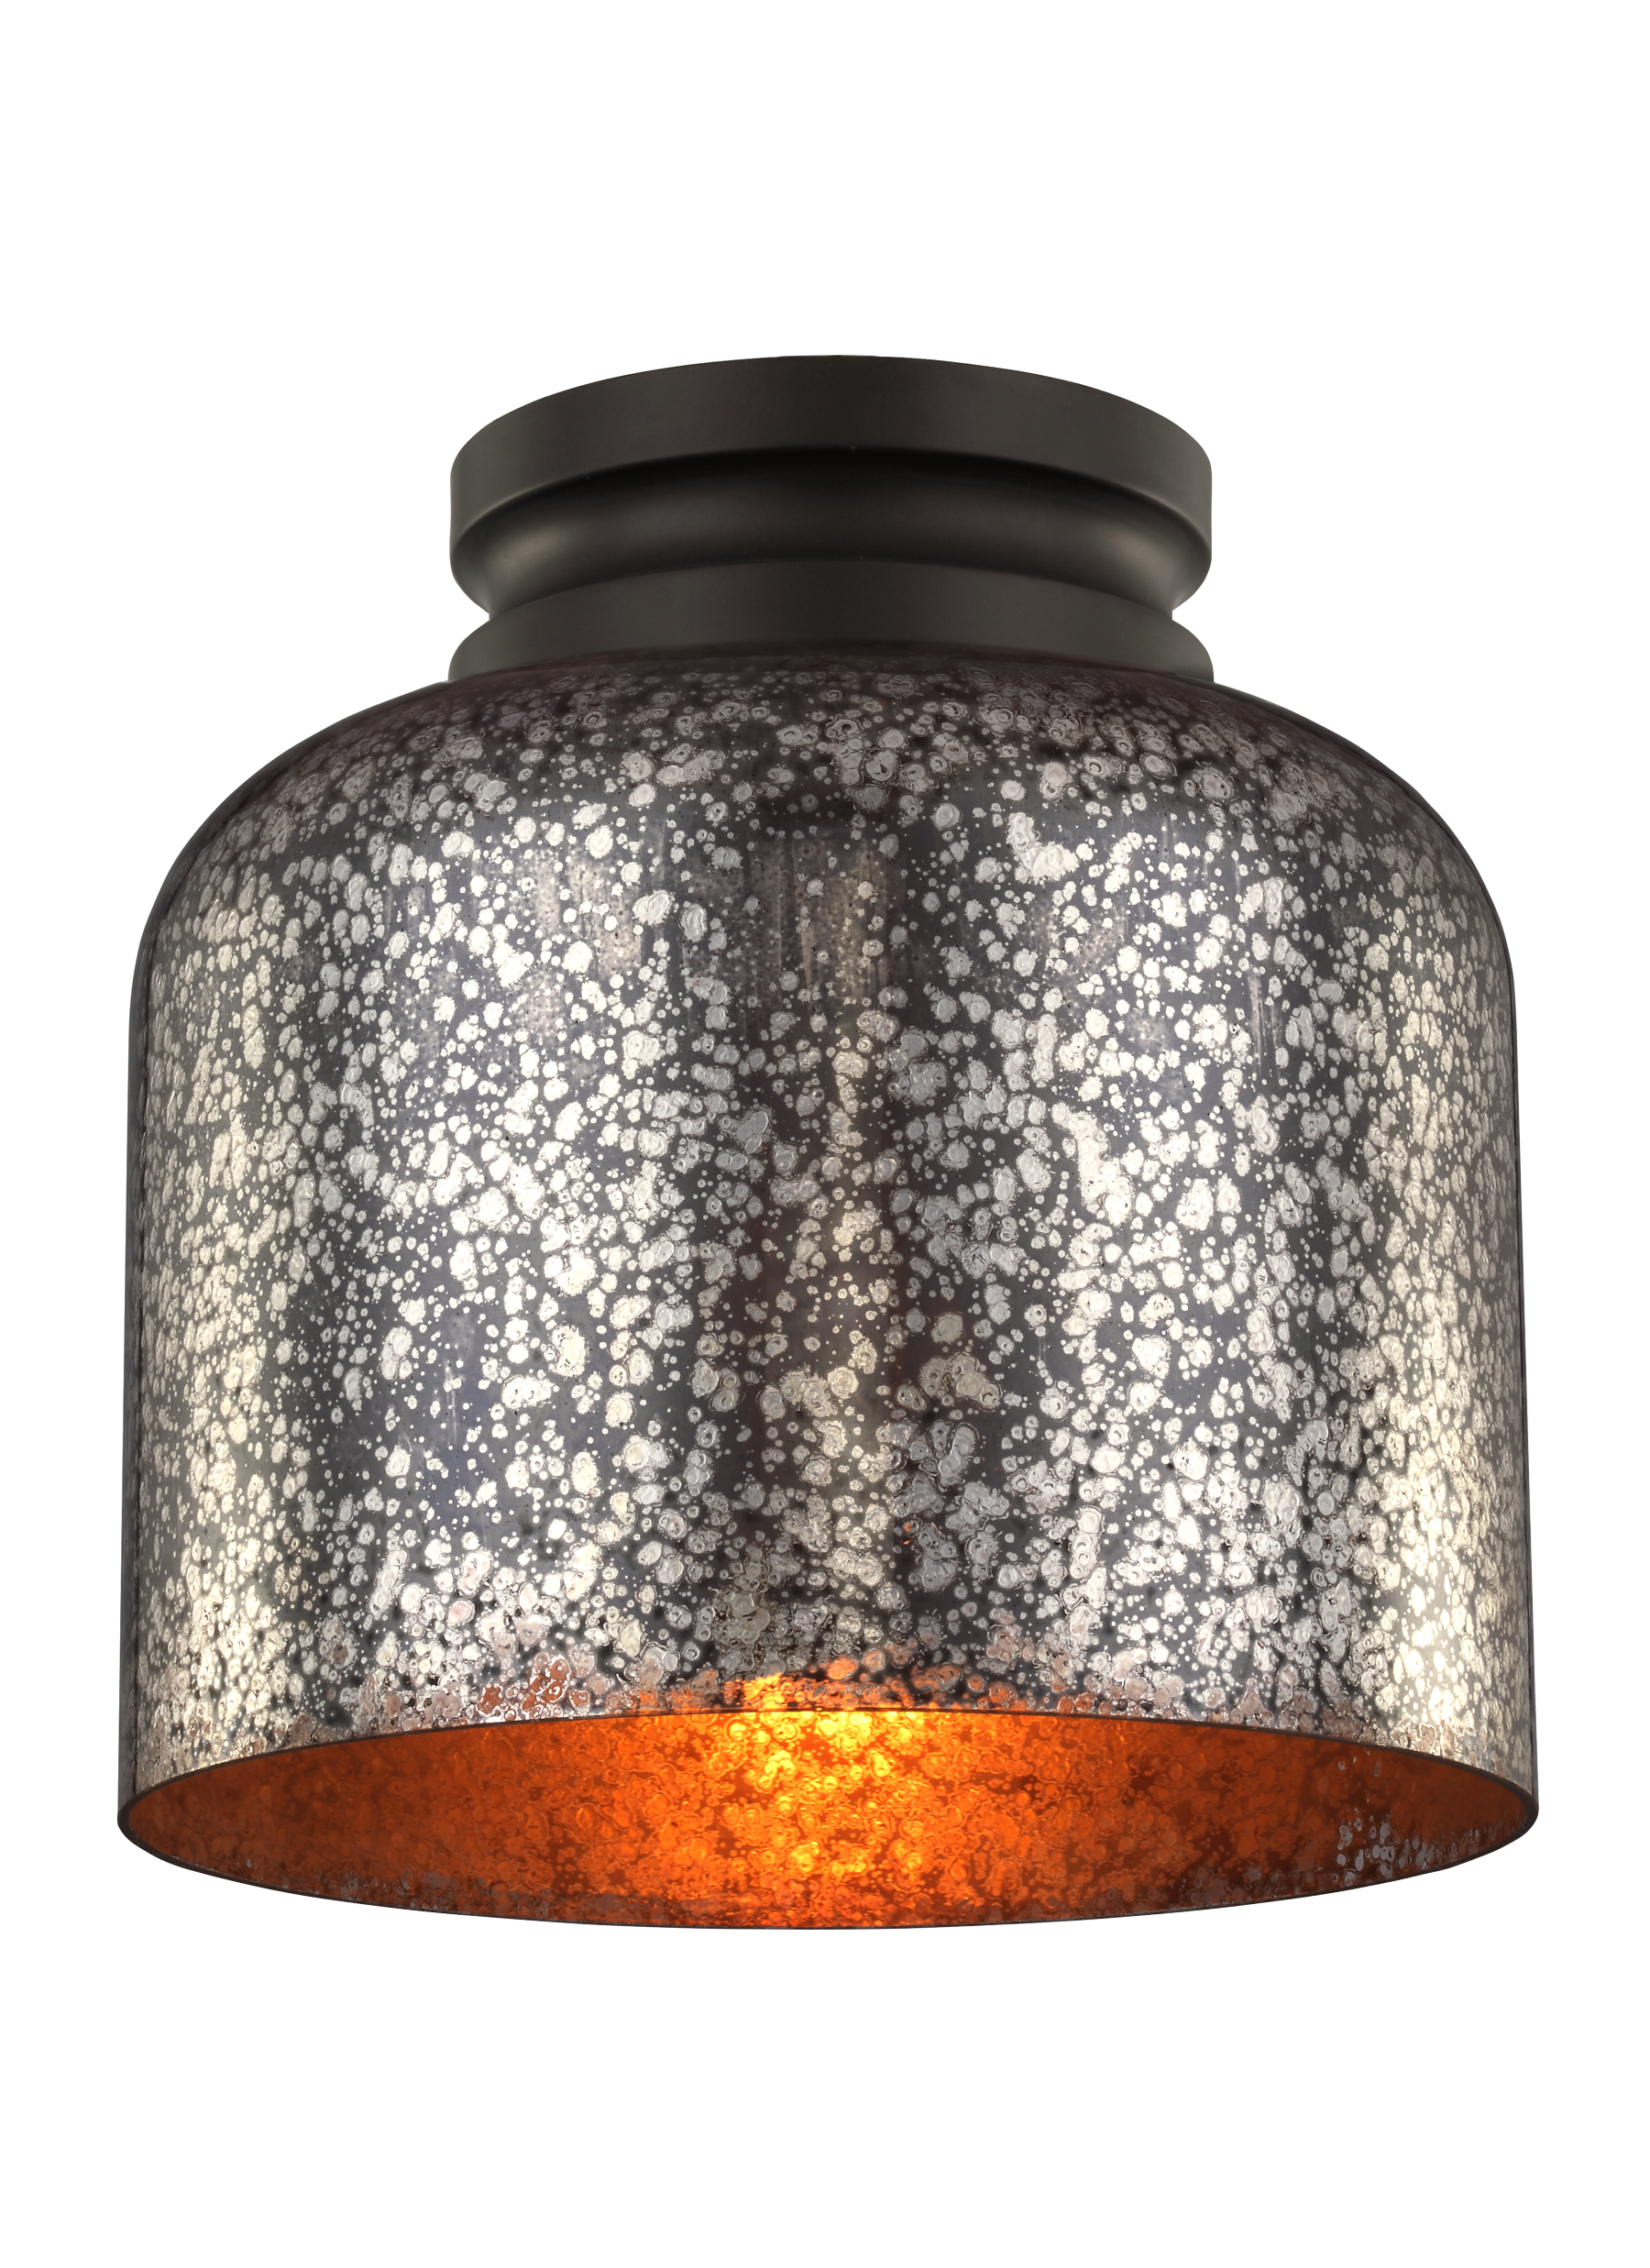 loading zoom compare view details craftmade jeremiah yorktown lighting flushmount light in oiled bronze